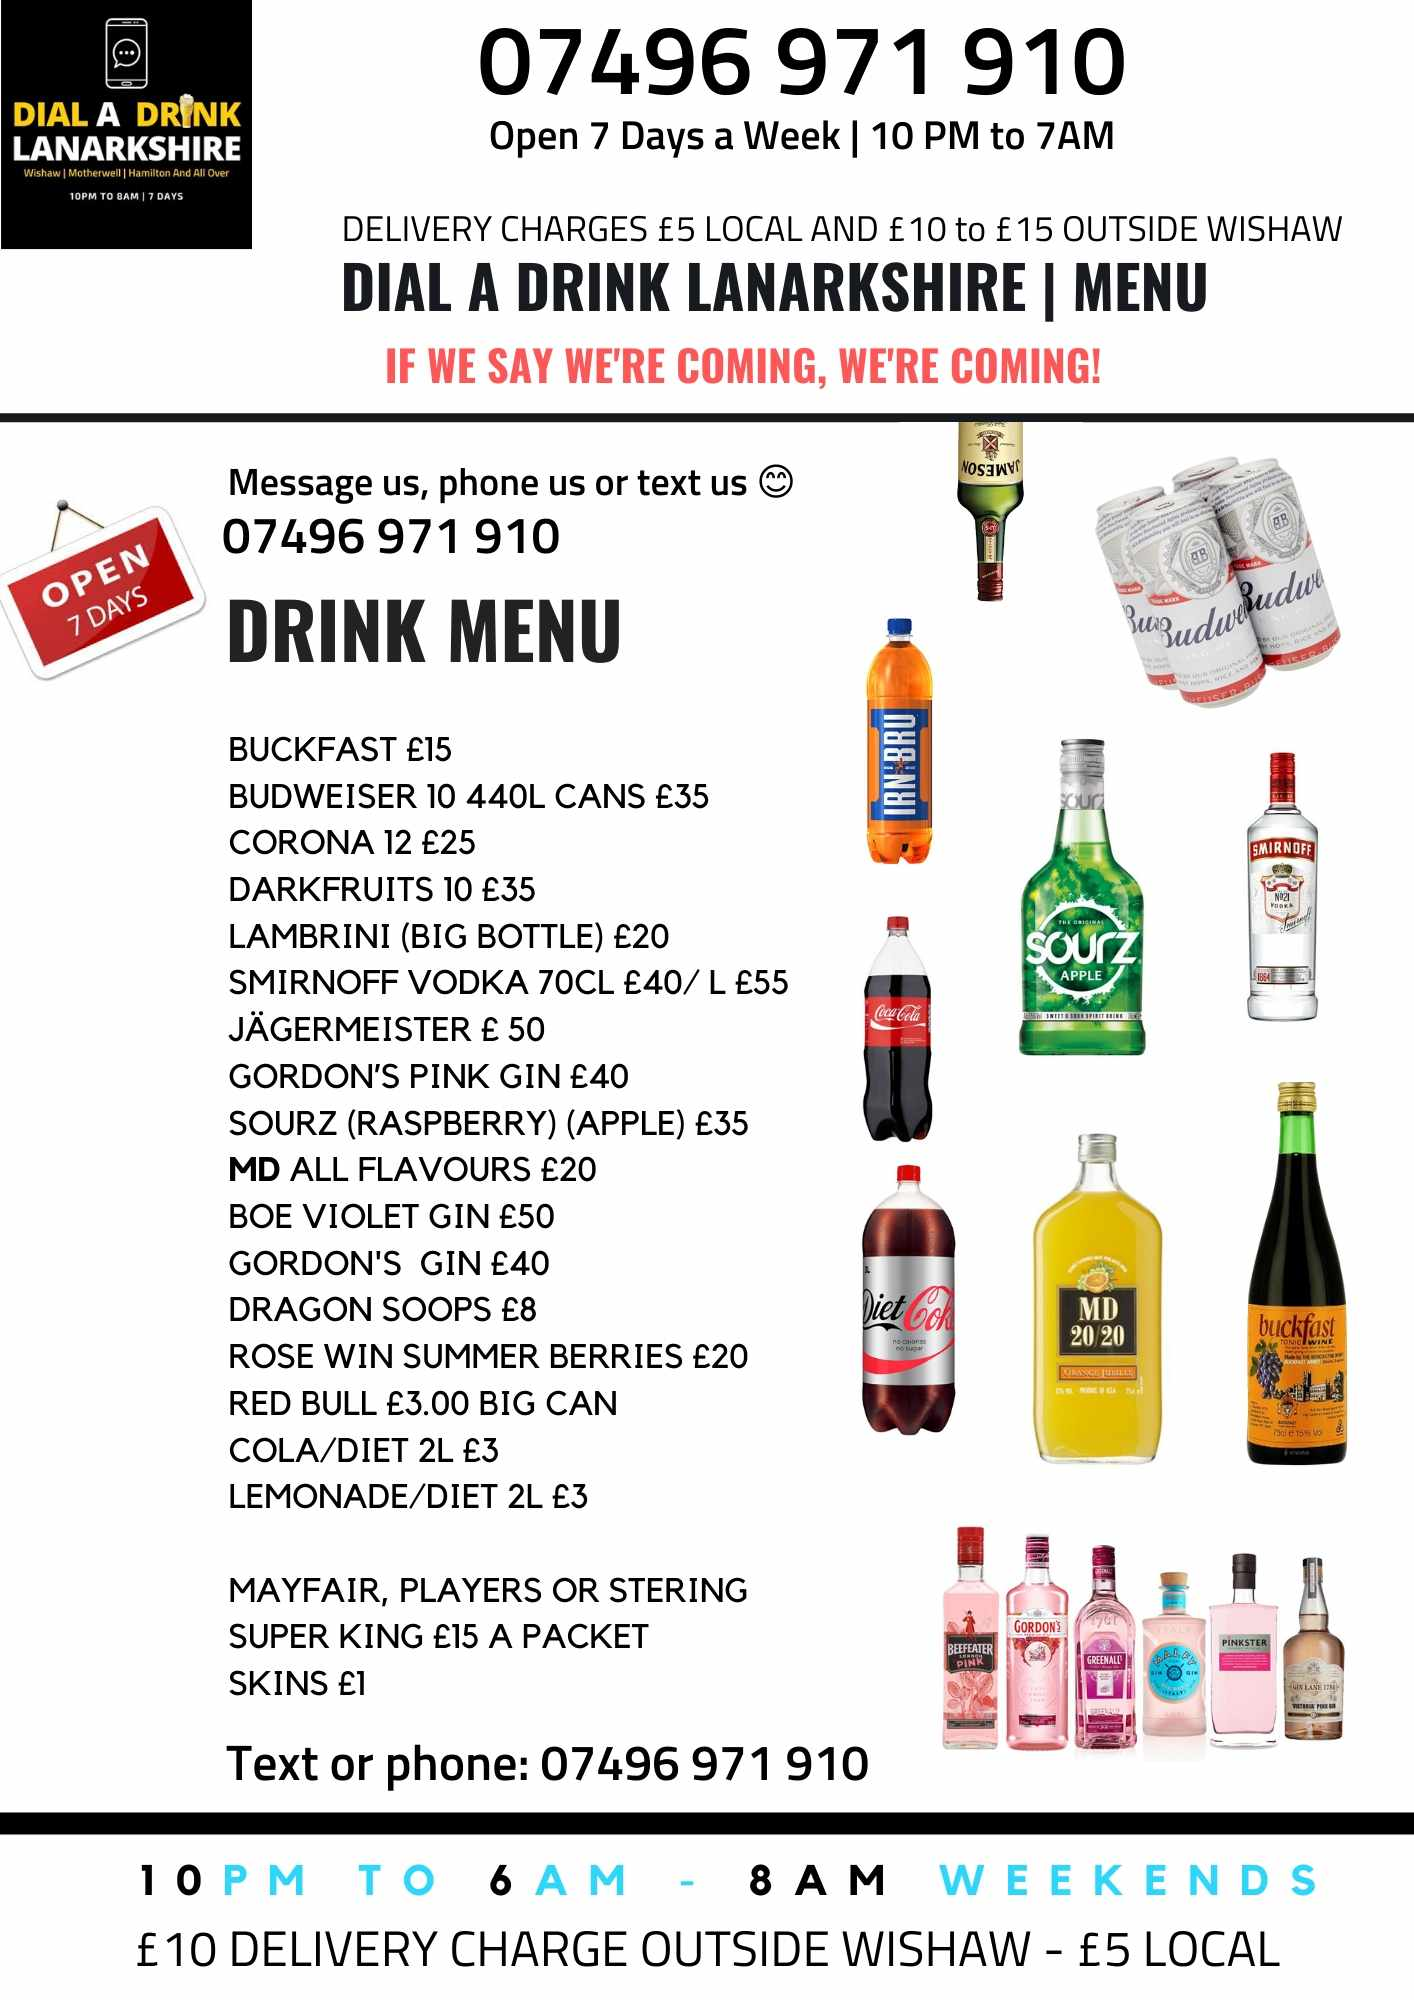 Dial a Drink Menu for North and South Lanarkshire